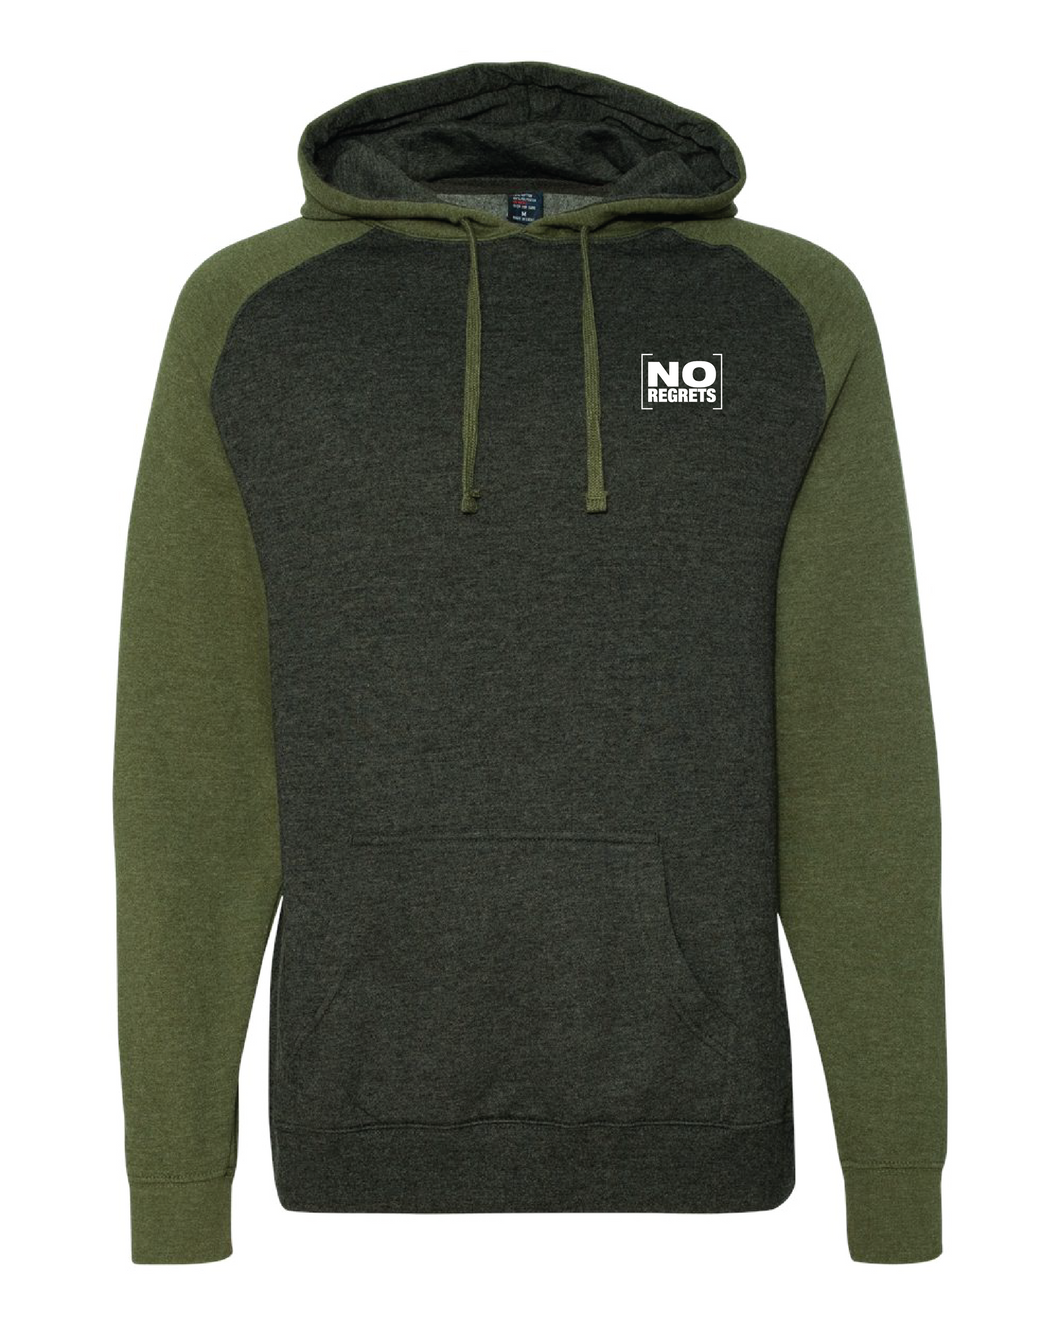 Raglan Hooded Sweatshirt